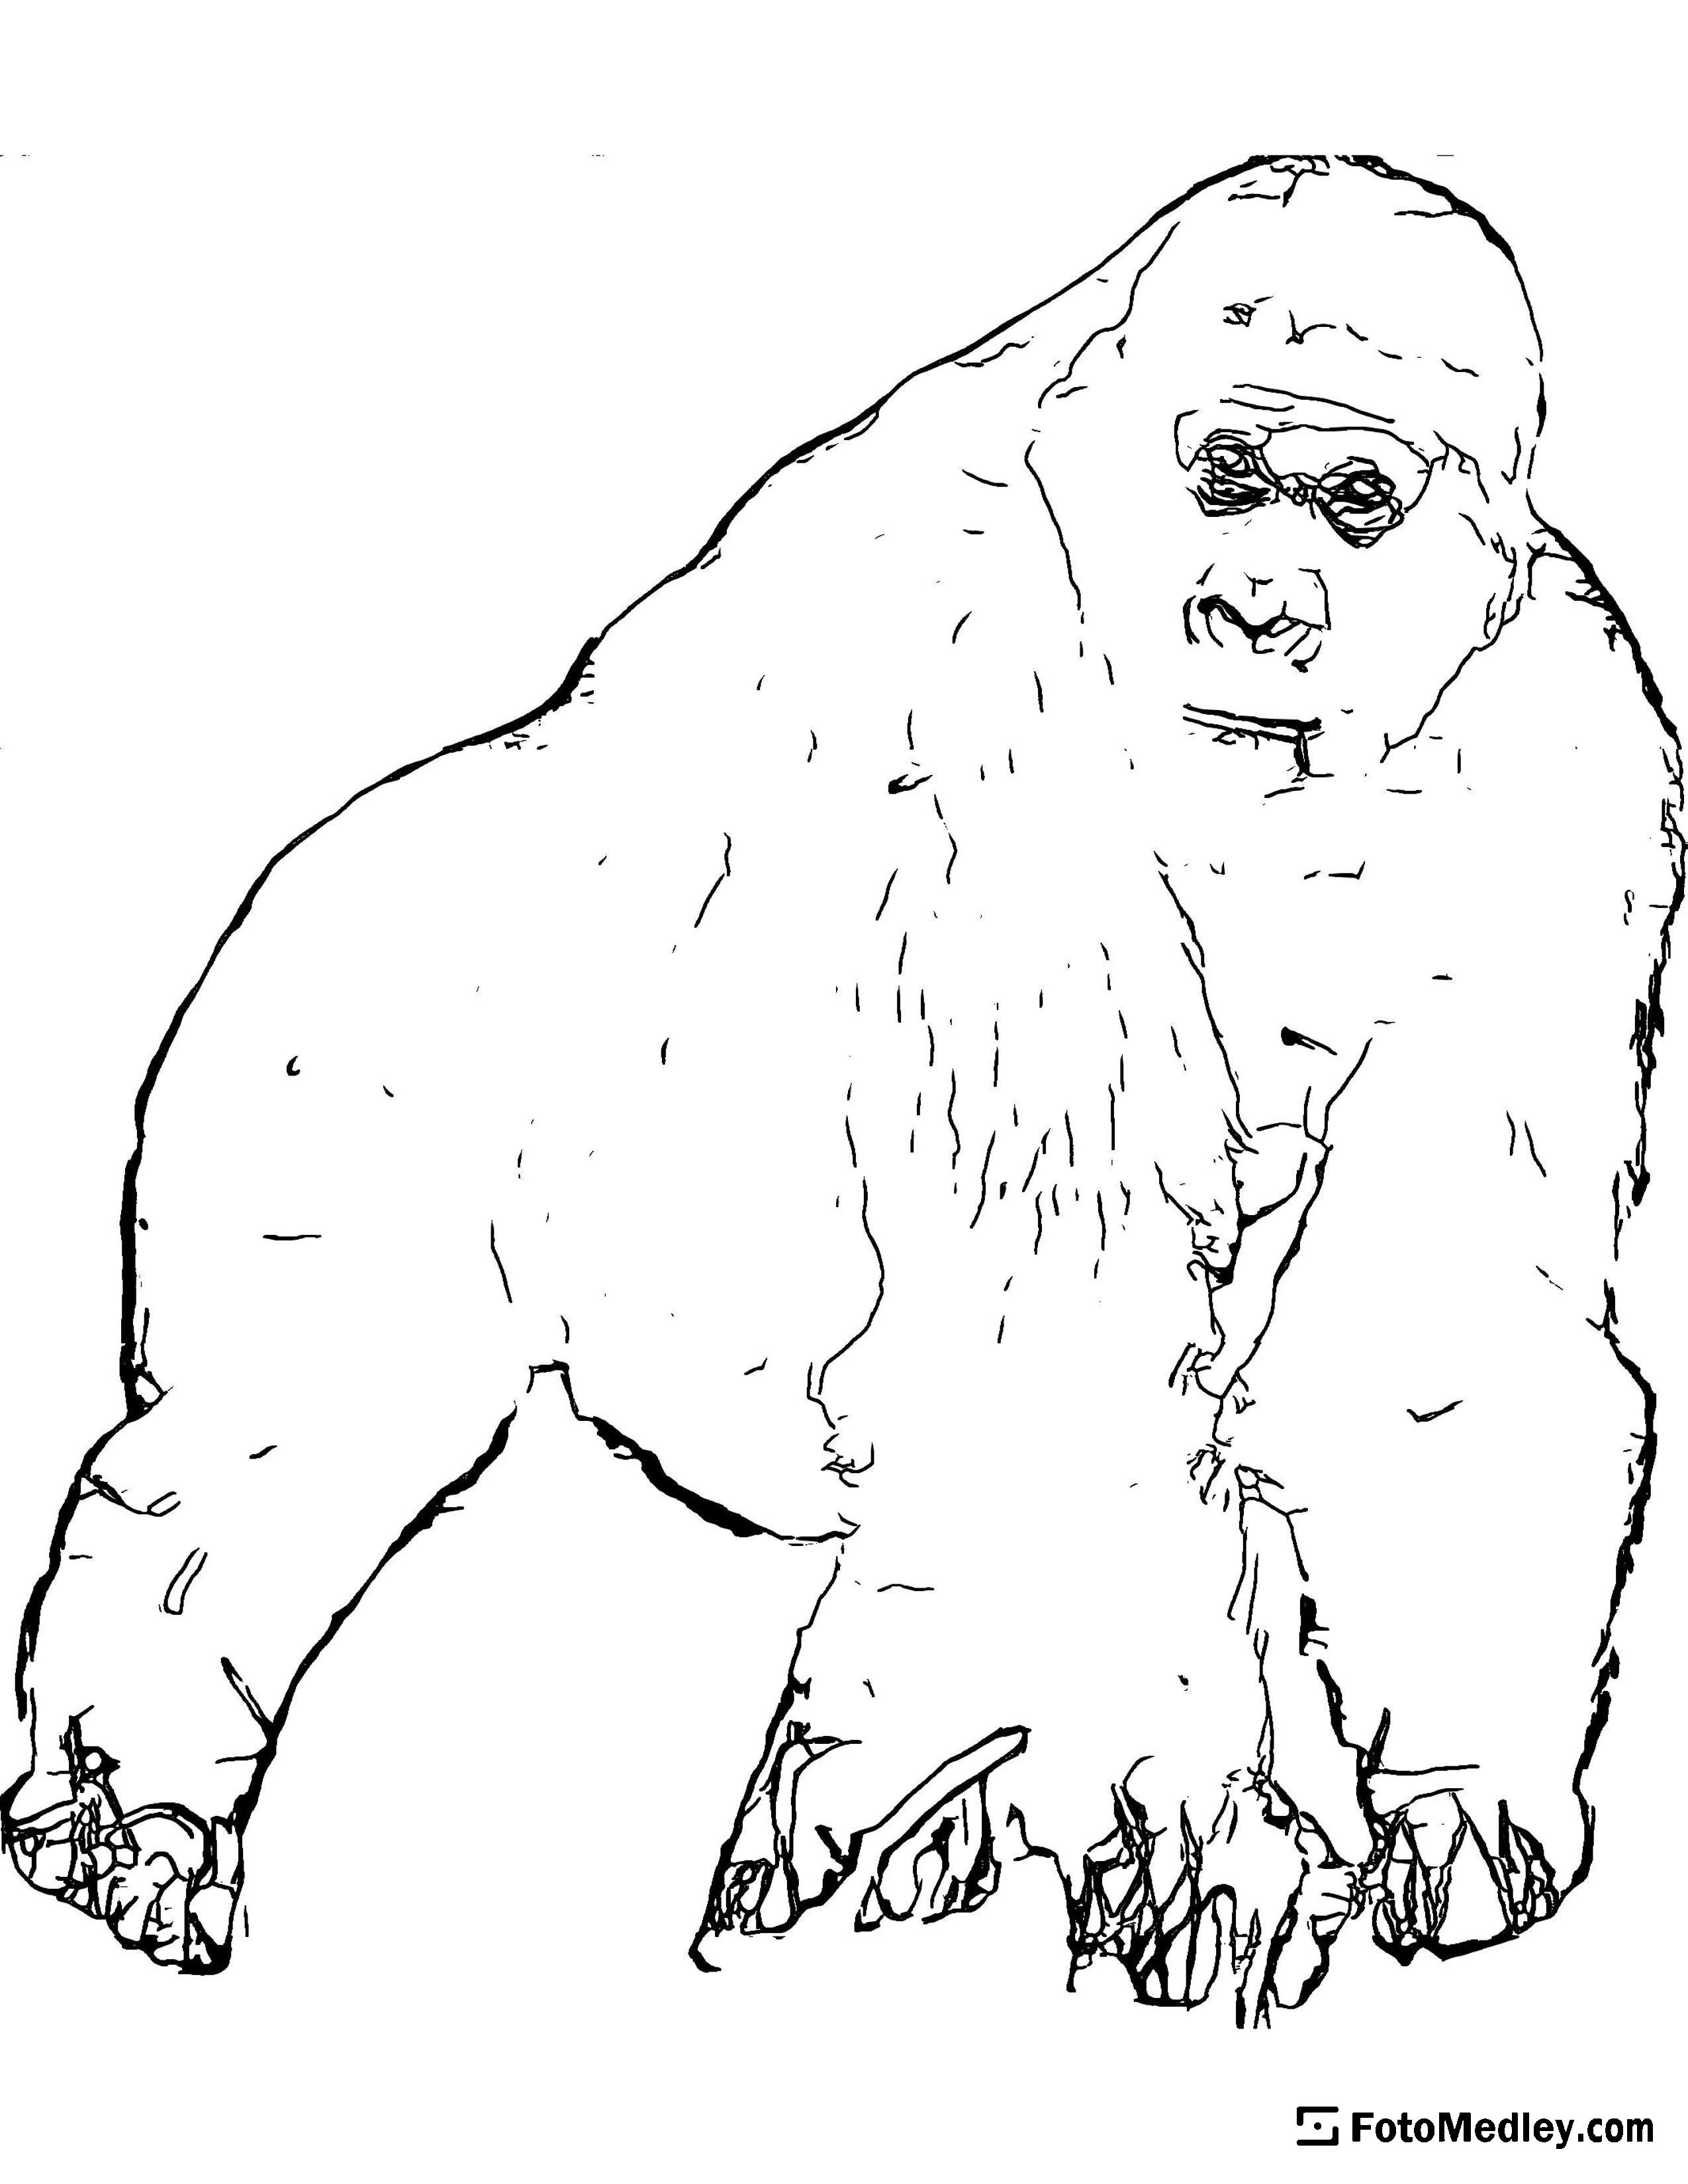 A coloring page showing gorilla walking on all fours.